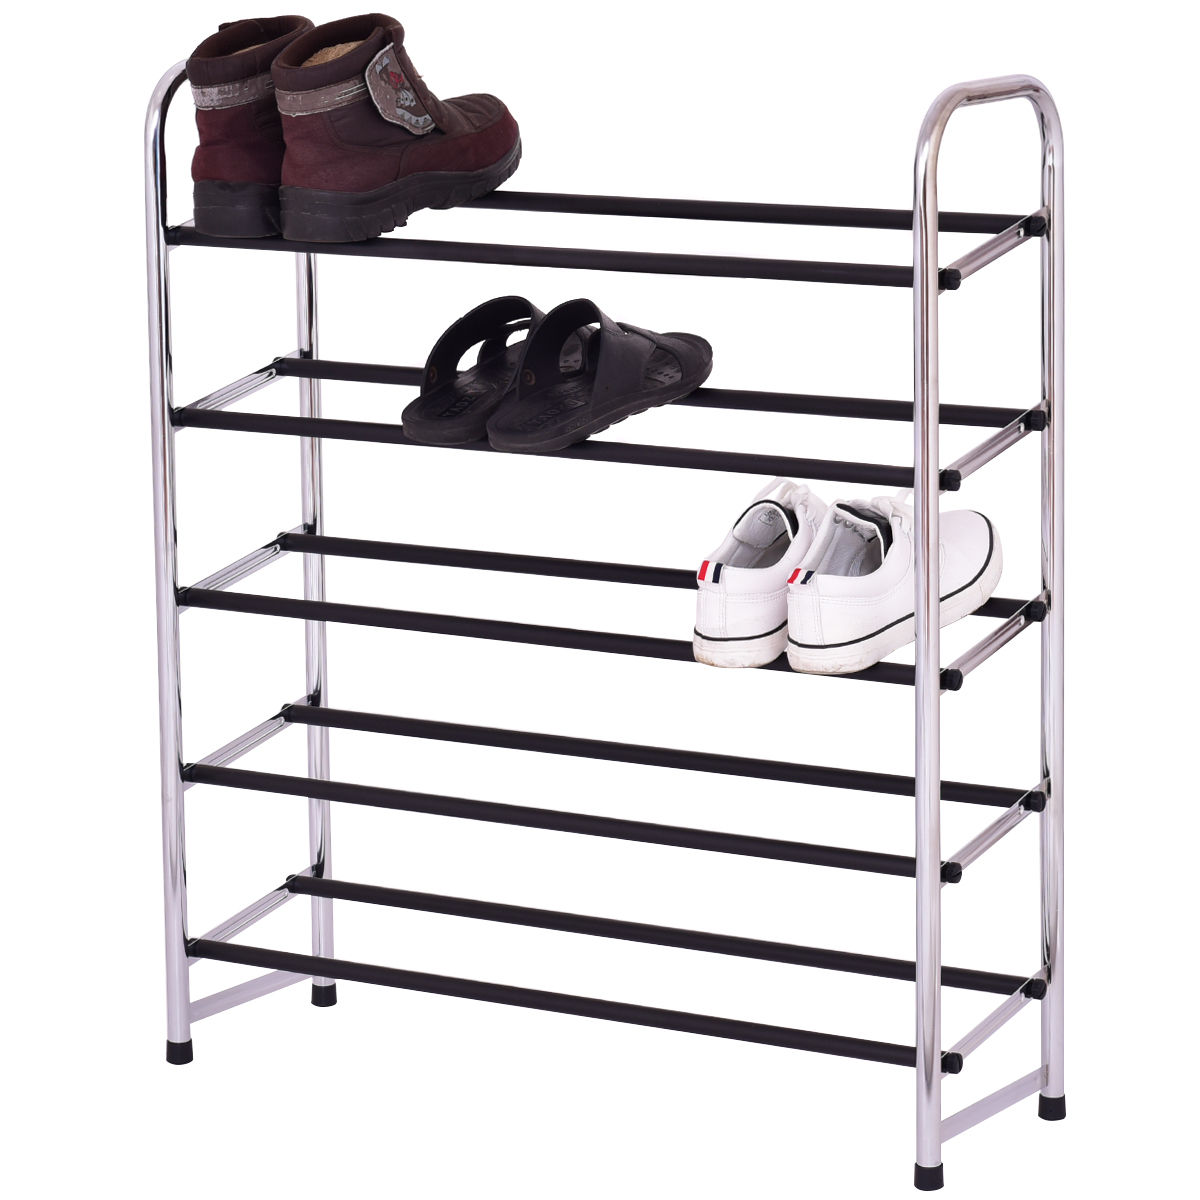 Giantex 5-Tier Mobile Shoe Rack Tower Living Room Storage Shelf Shoes Holder Organizer Modern Home Furniture HW55252 shoe rack nonwovens steel pipe 4 layers shoe cabinet easy assembled shelf storage organizer stand holder living room furniture